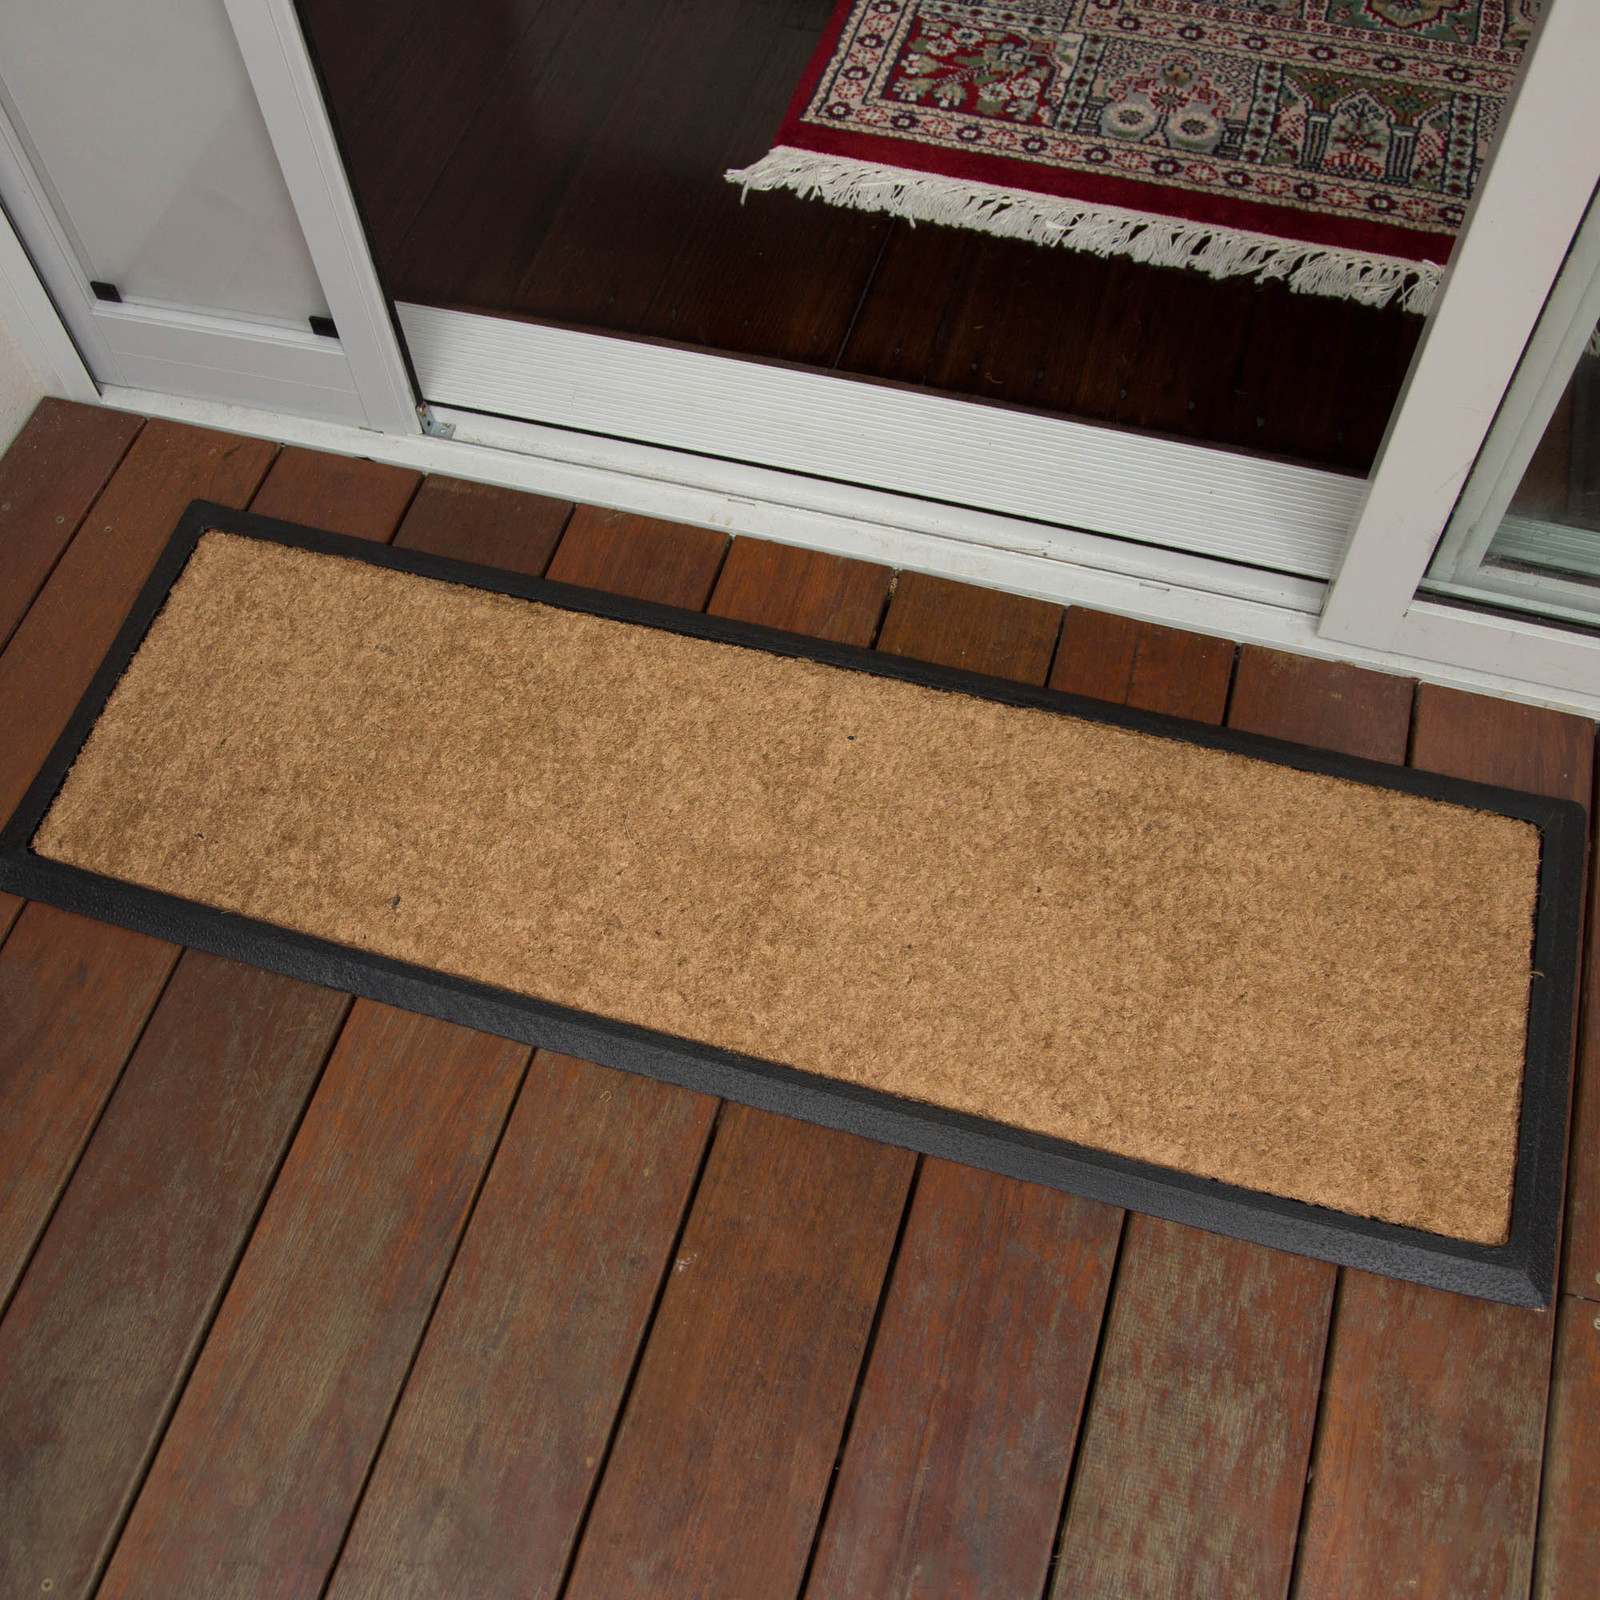 Large Door Mats Outdoor Doormat 40x120cm Plain Long Coir Heavy Duty Door Mat